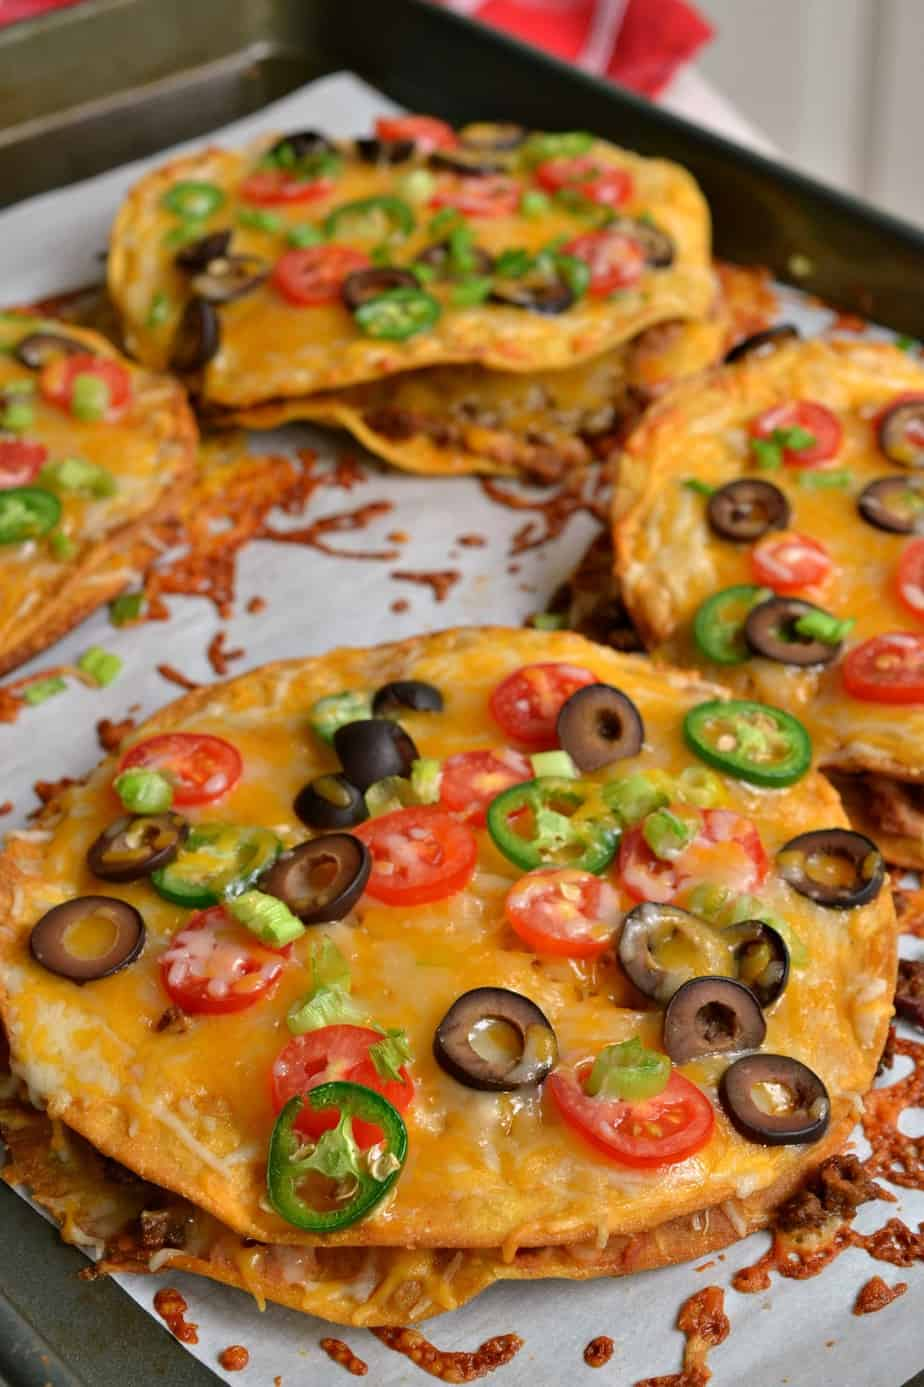 Here's how to make delicious Mexican pizzas for an easy and fun weeknight or weekend dinner